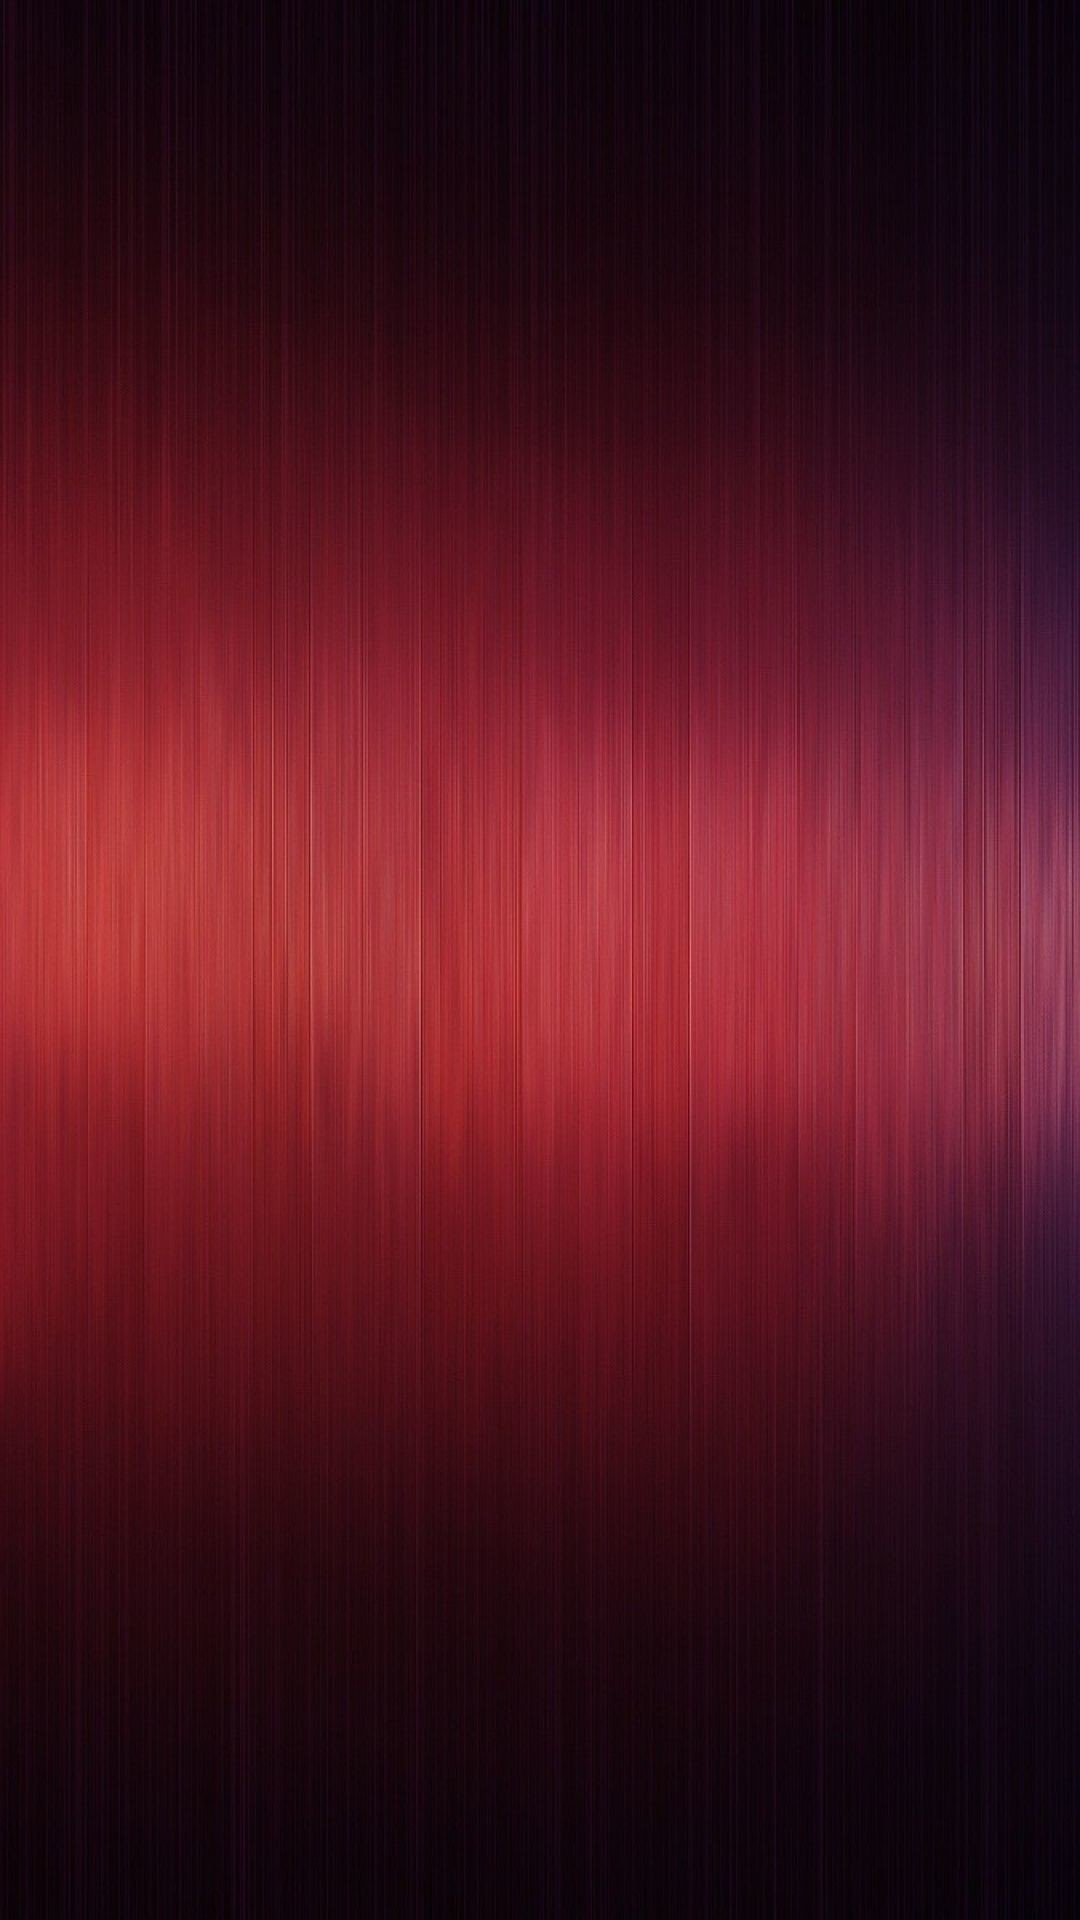 Abstract Red Color Background Mobile Hd Wallpaper   - Color Wallpaper Hd For Mobile - HD Wallpaper